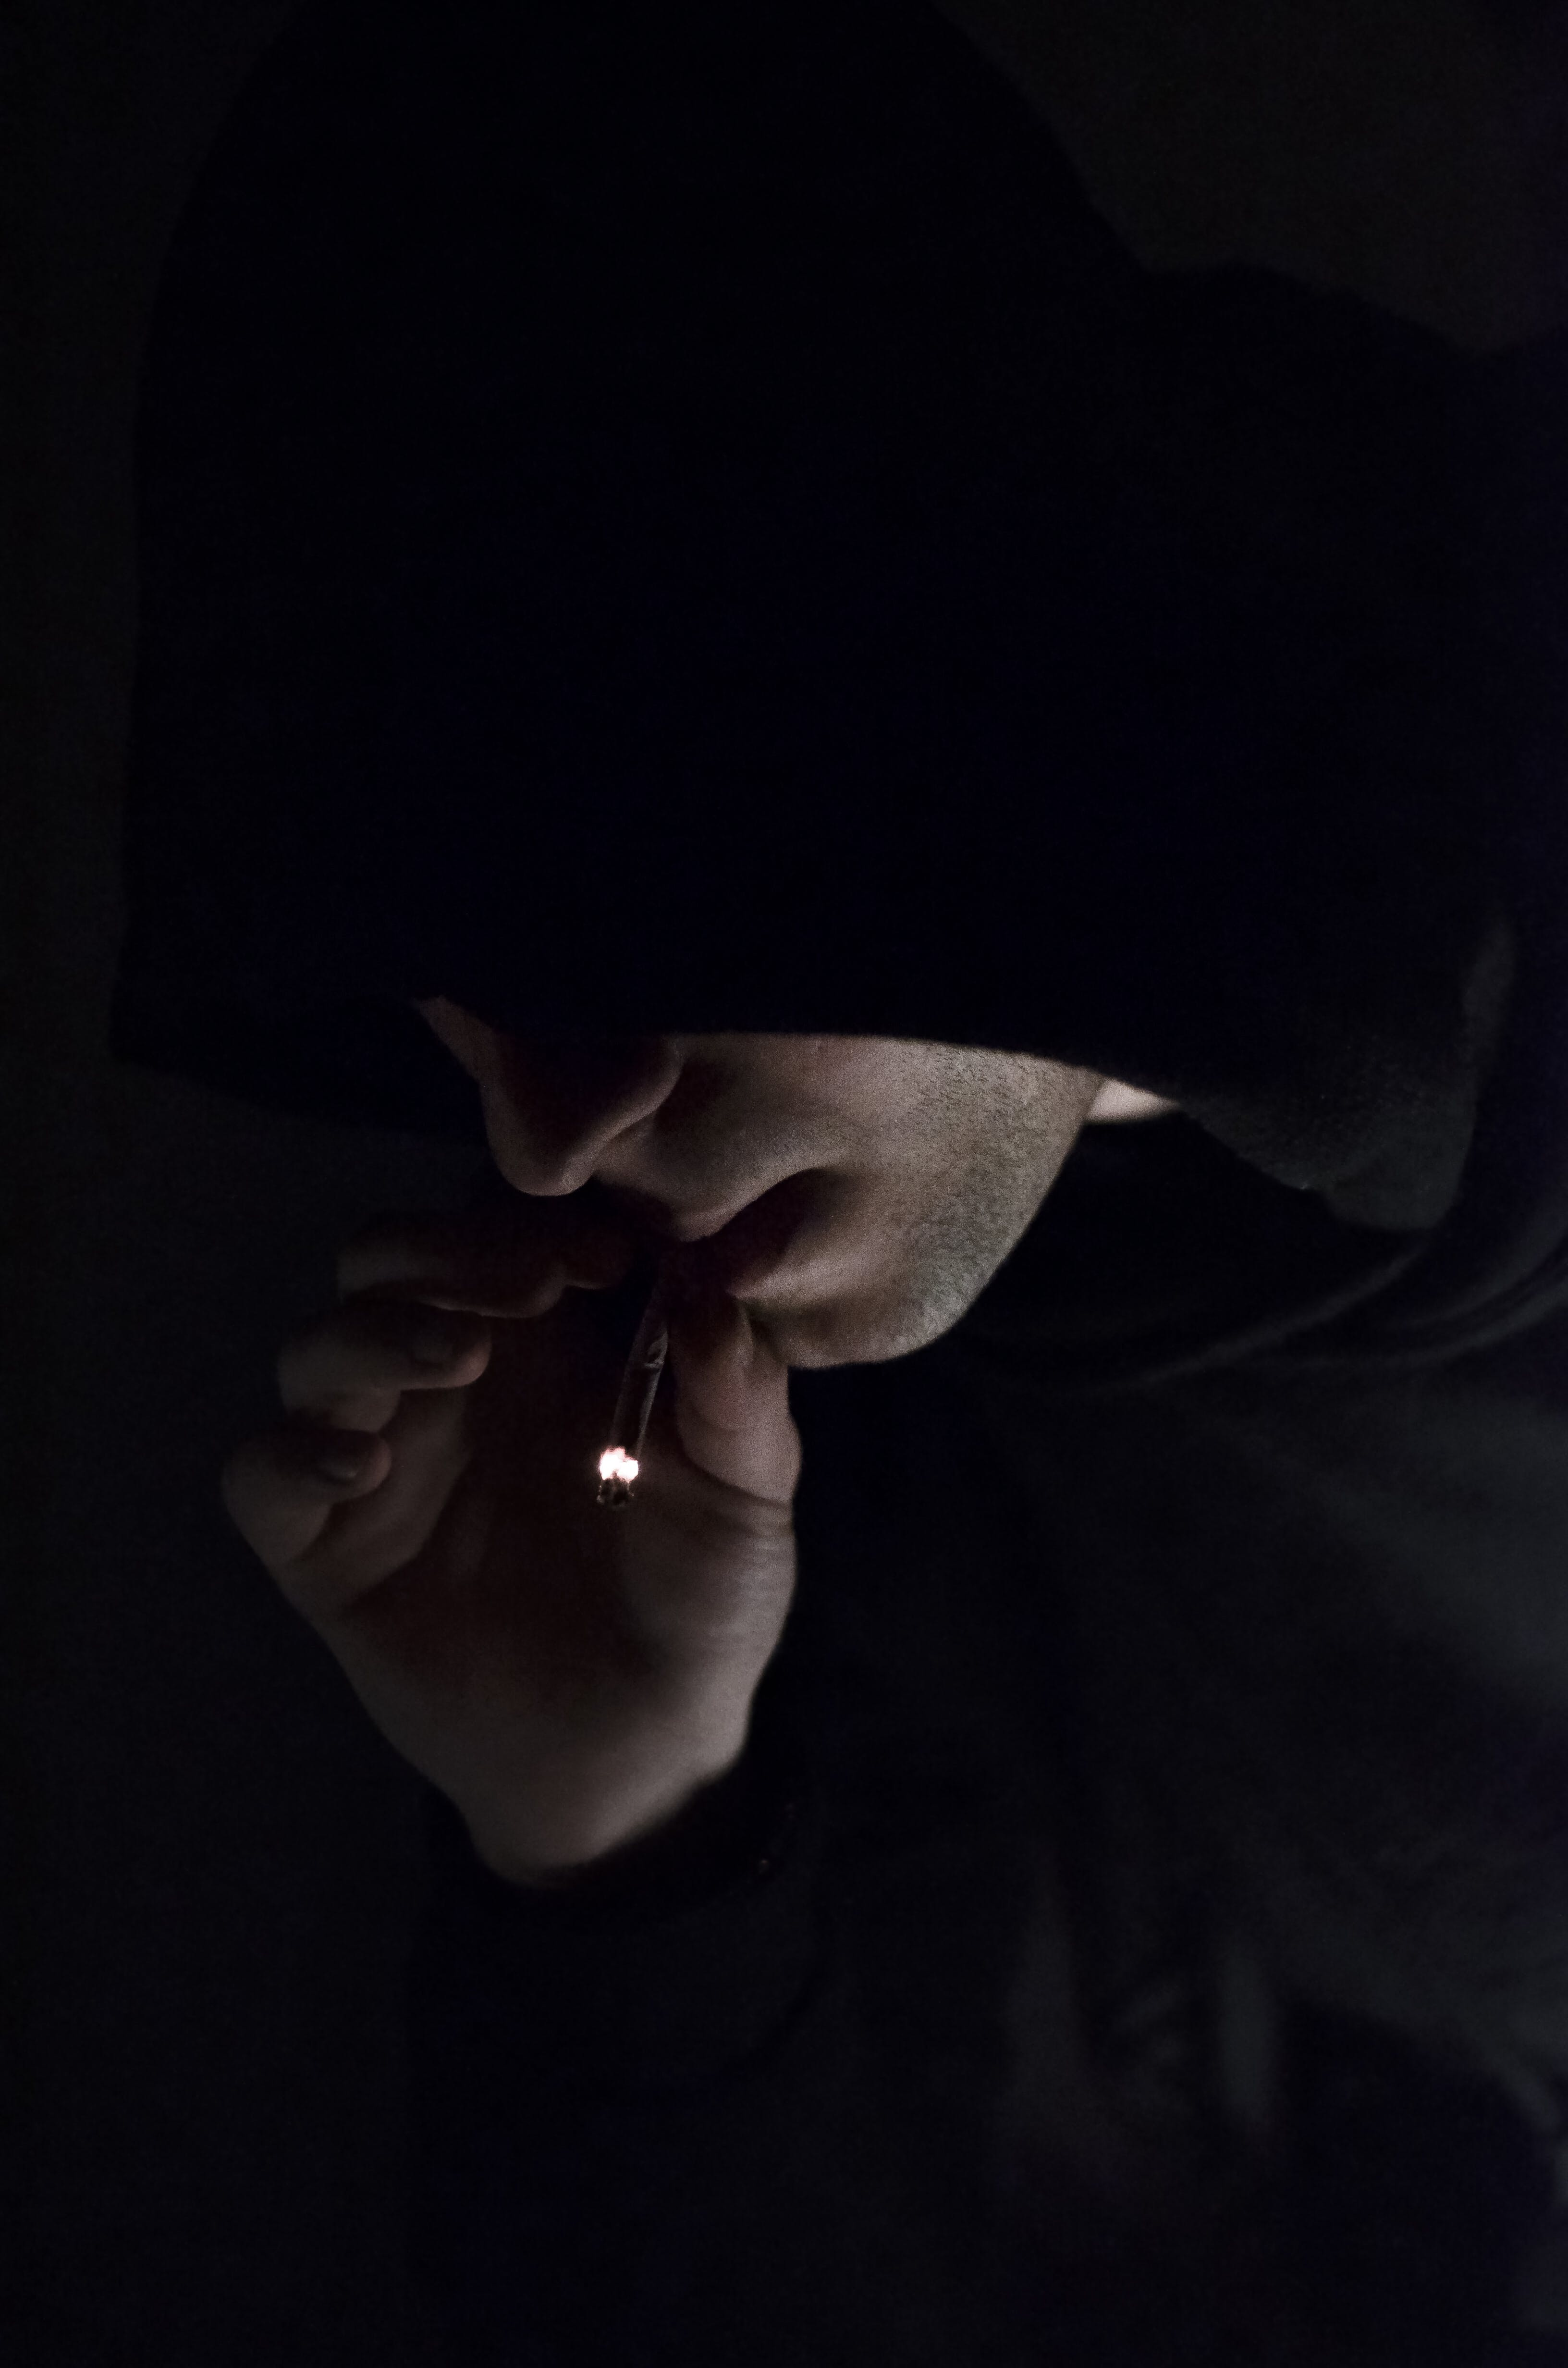 Man in Hoodie Smoking Cigarette